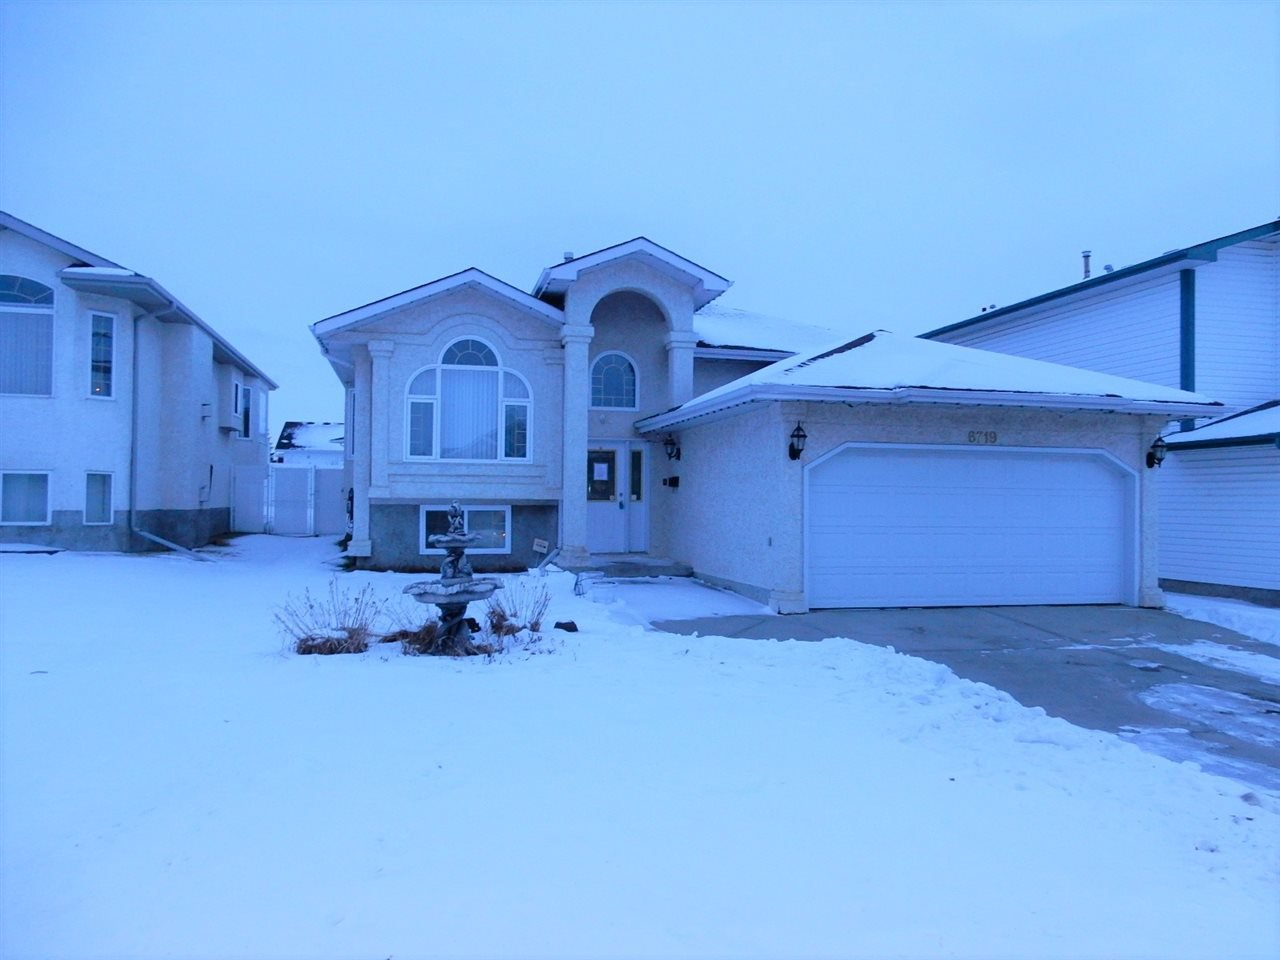 Main Photo: 6719 162 Avenue in Edmonton: Zone 28 House for sale : MLS®# E4187467